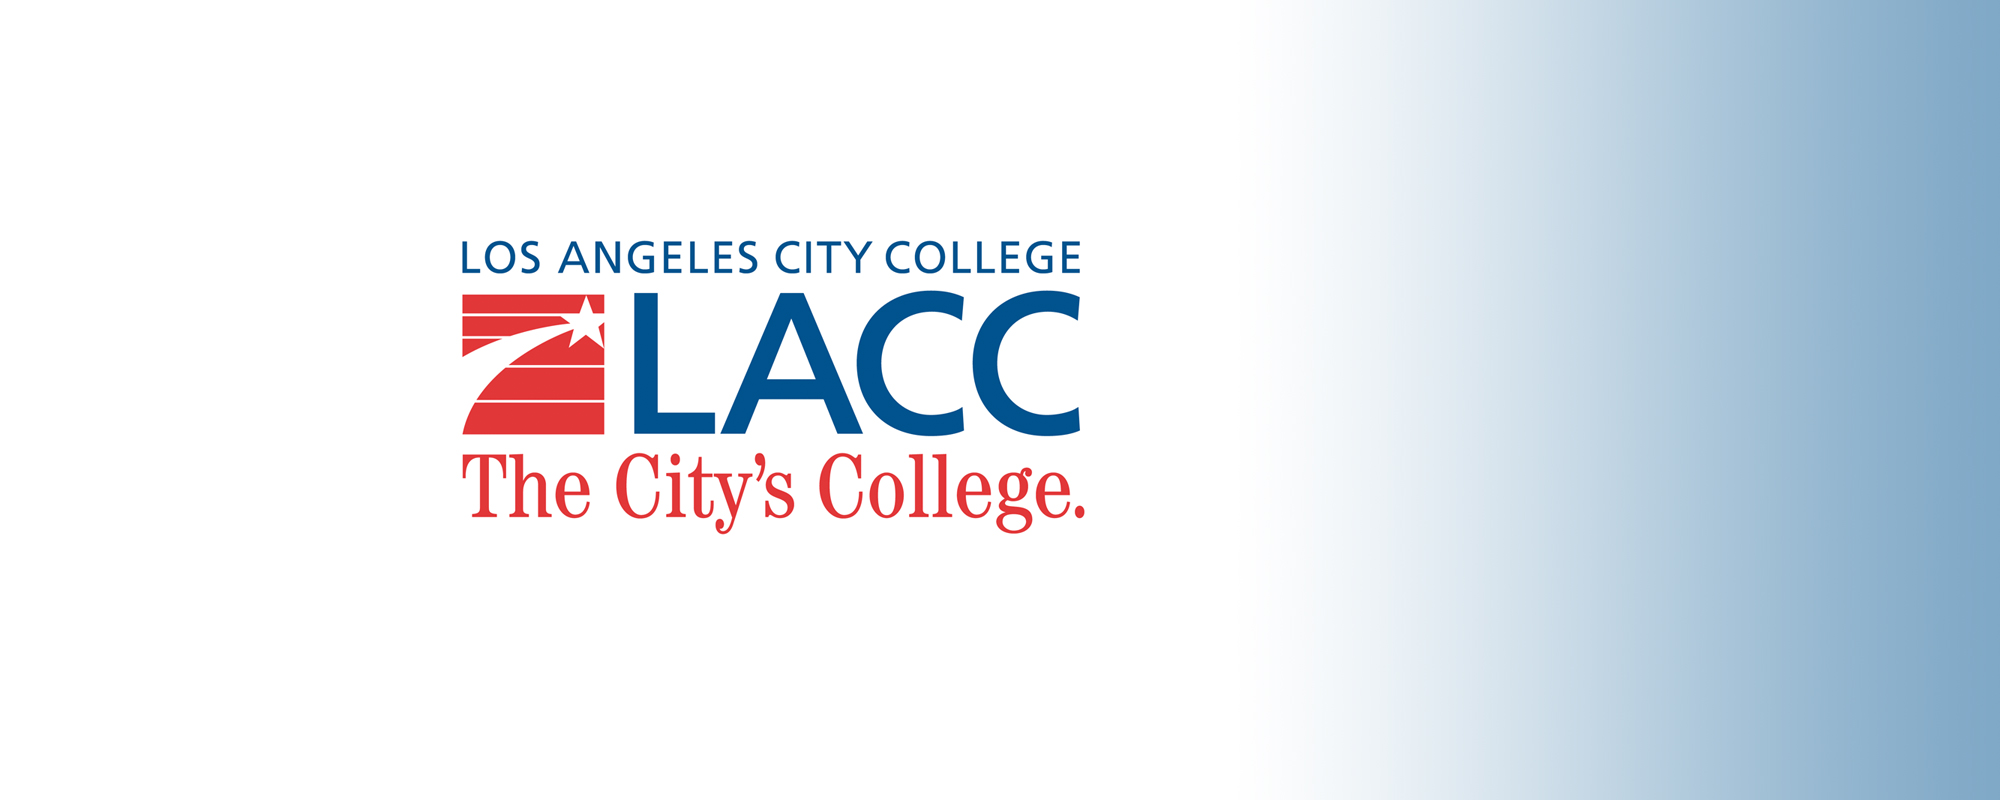 The Los Angeles City College logo